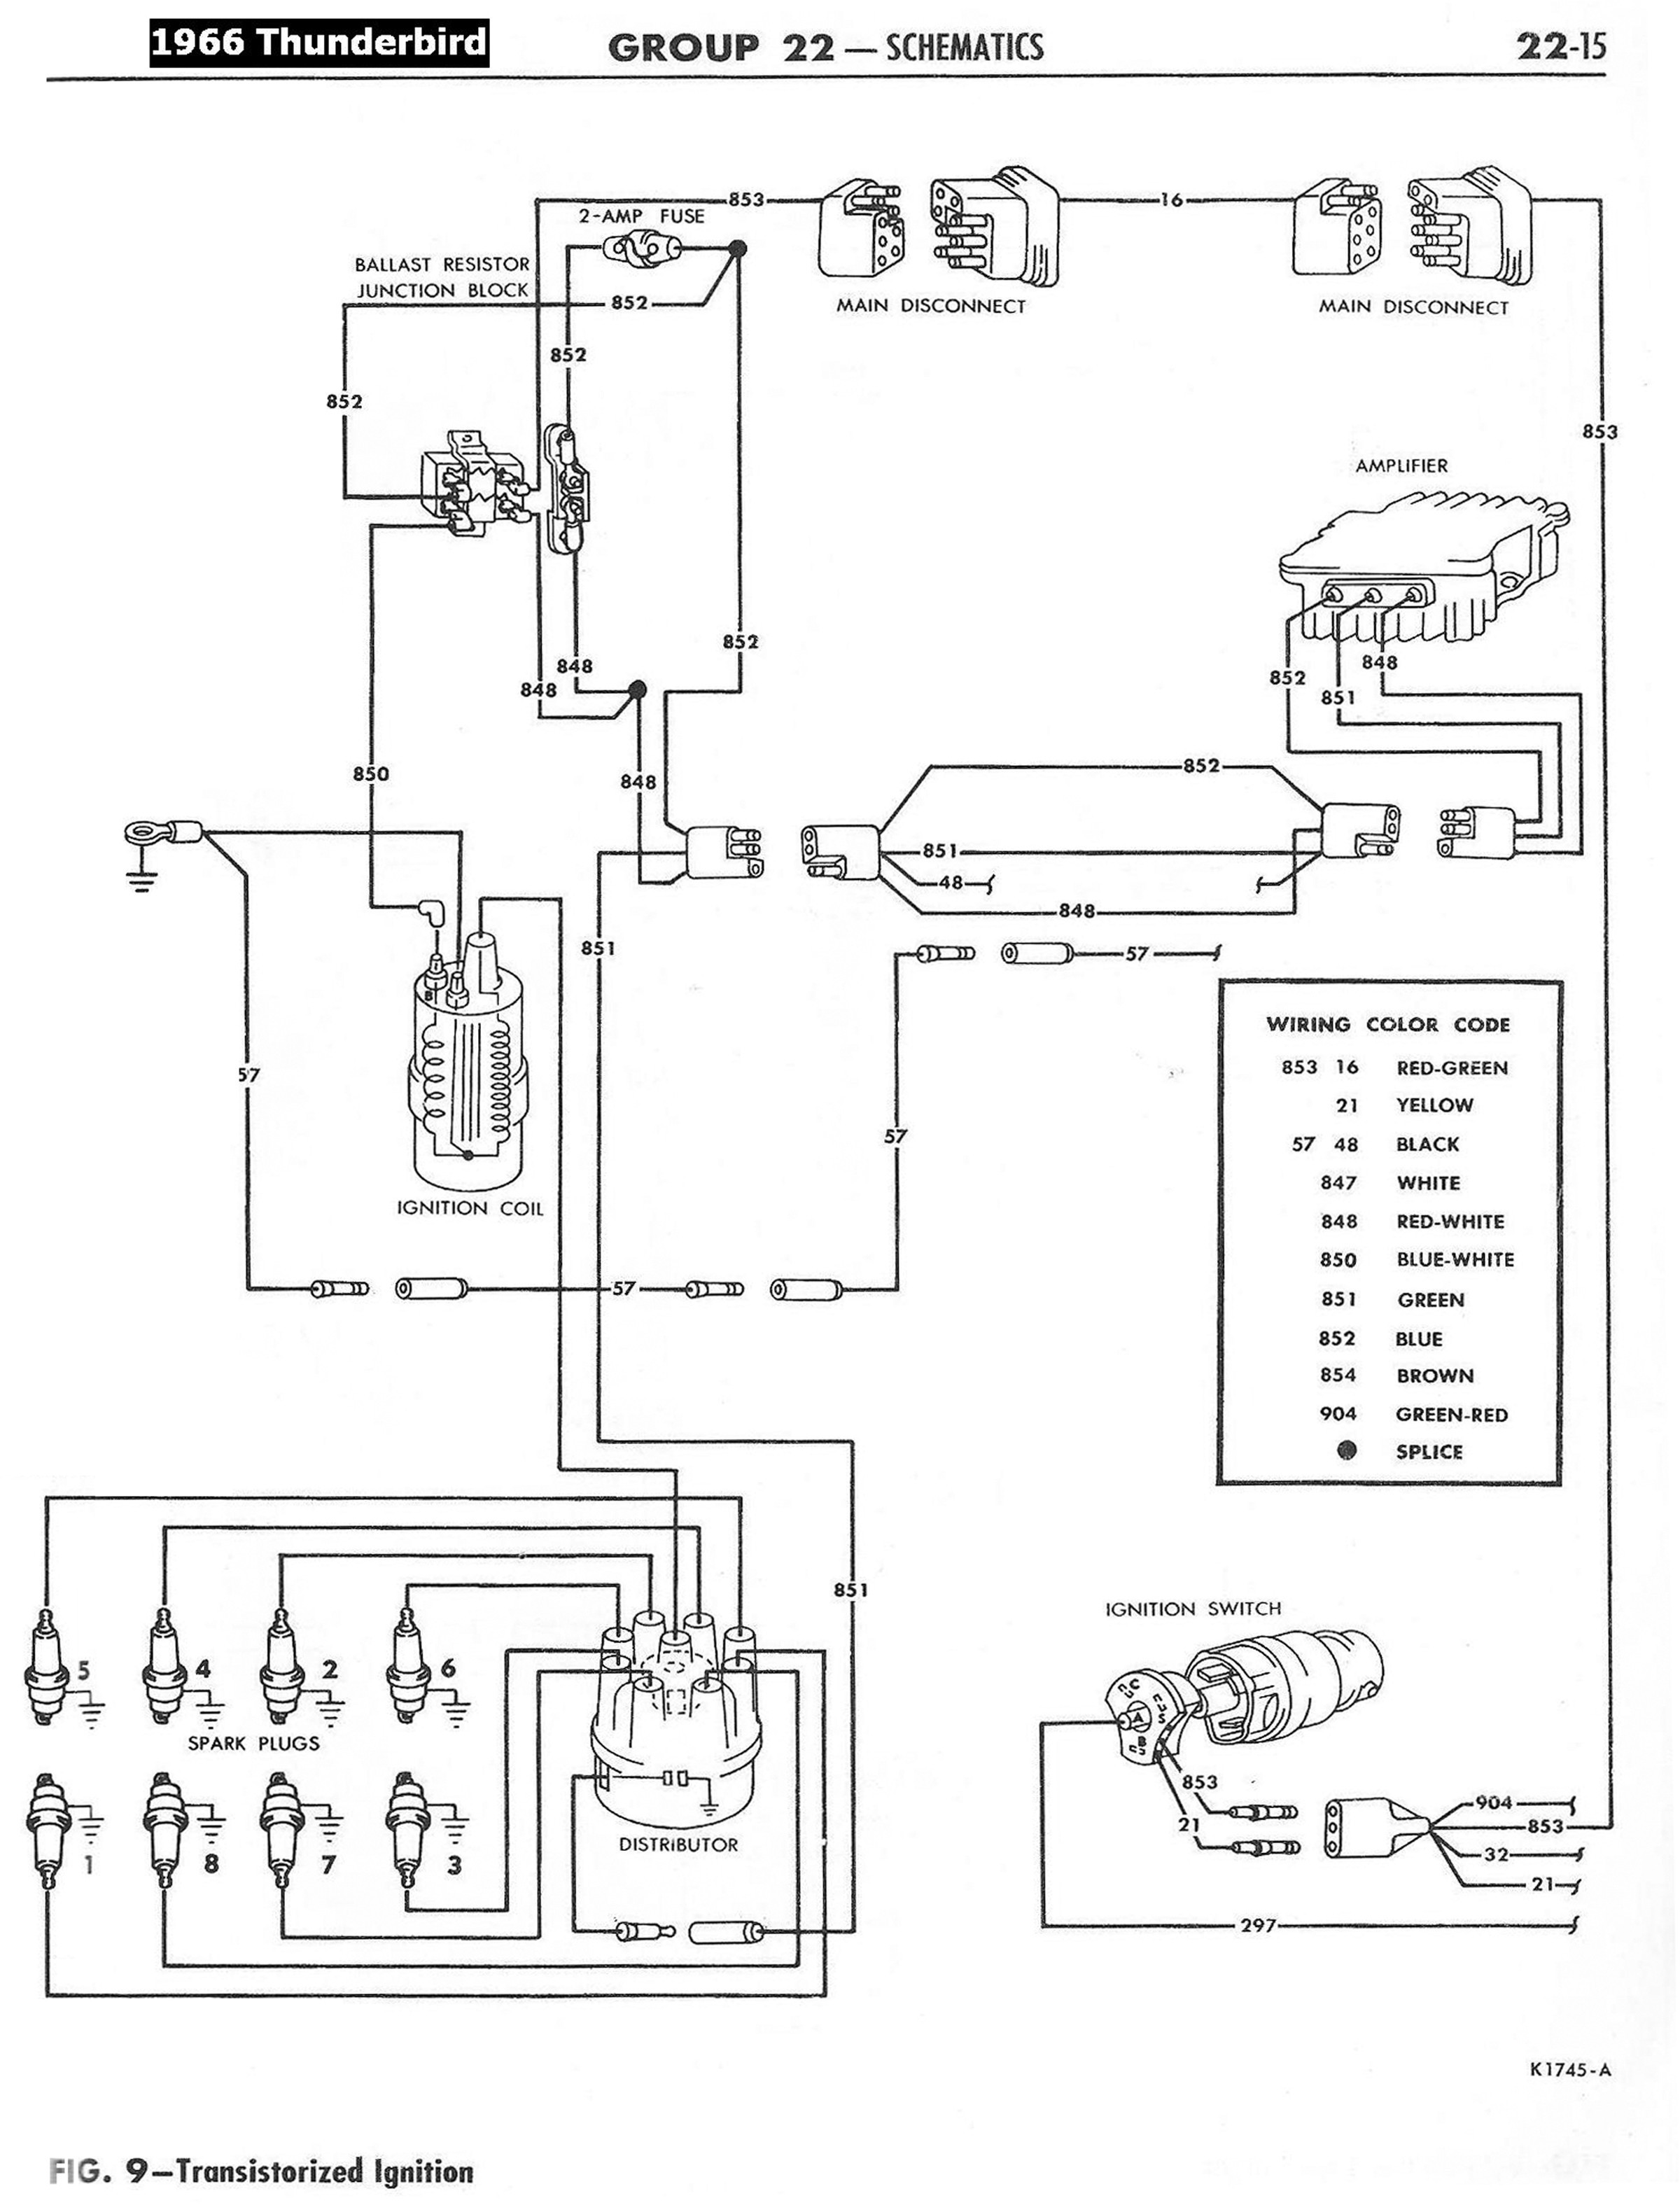 Wiring Diagram Of Ignition System : Diagram of coil ignition system my wiring